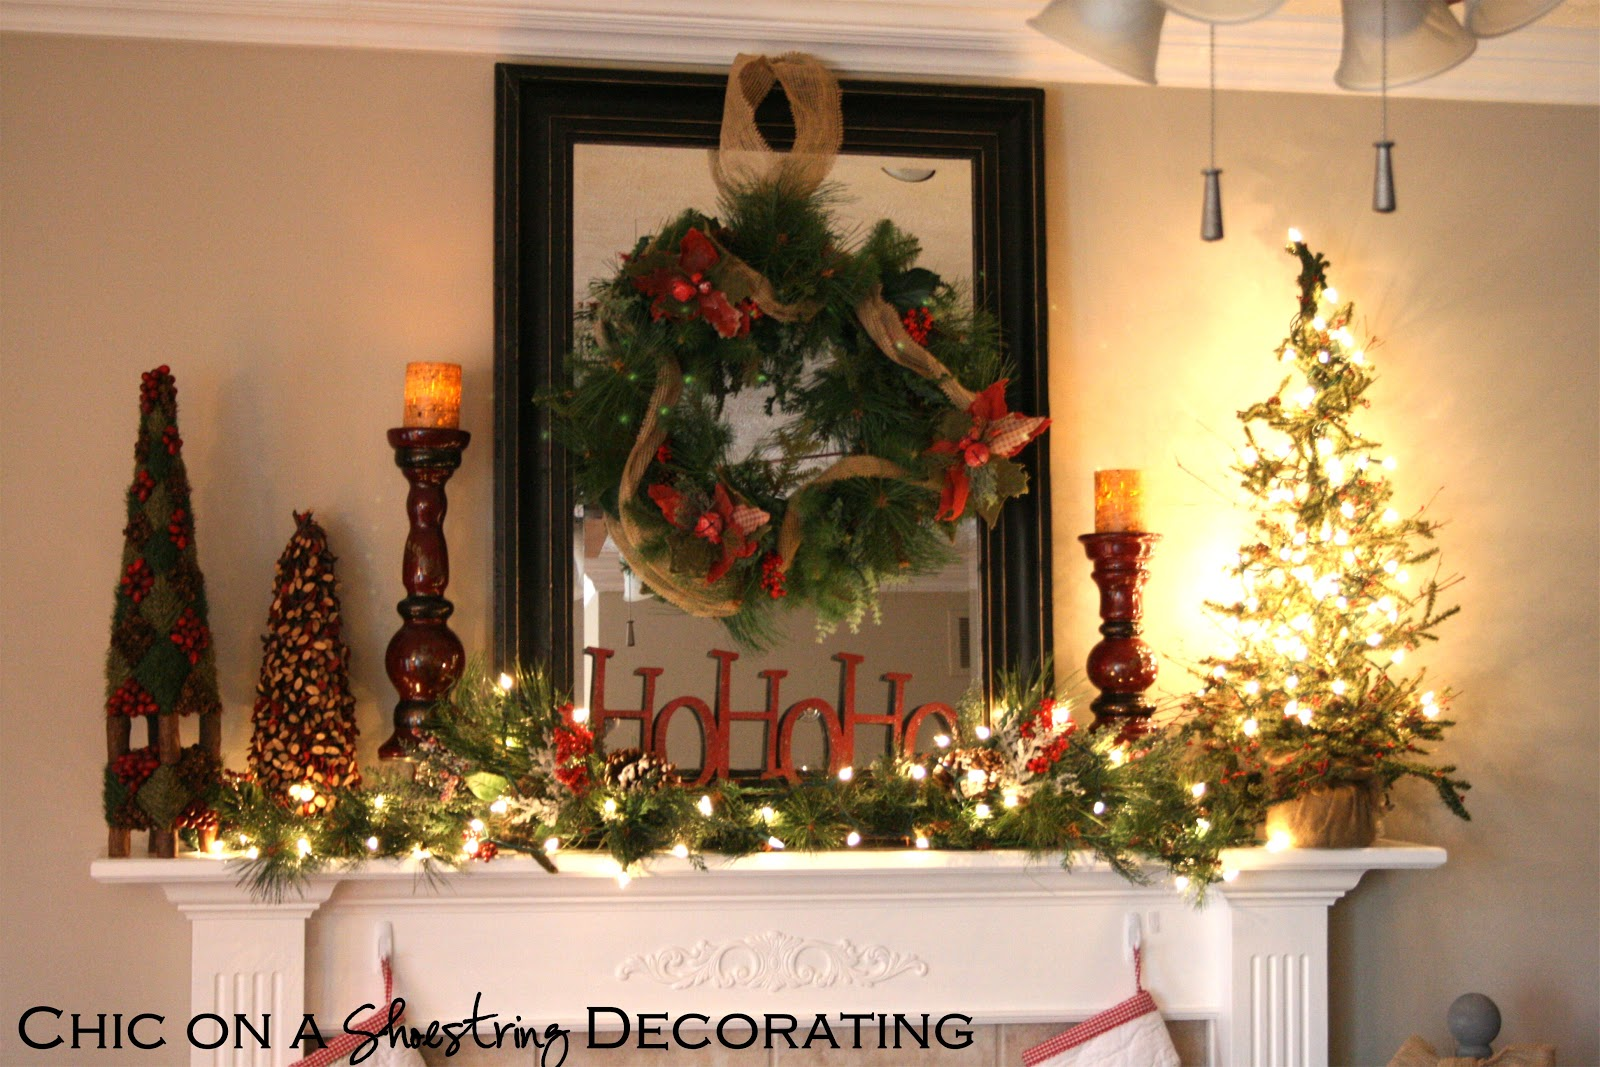 Chic On A Shoestring Decorating: Rustic Christmas Mantel